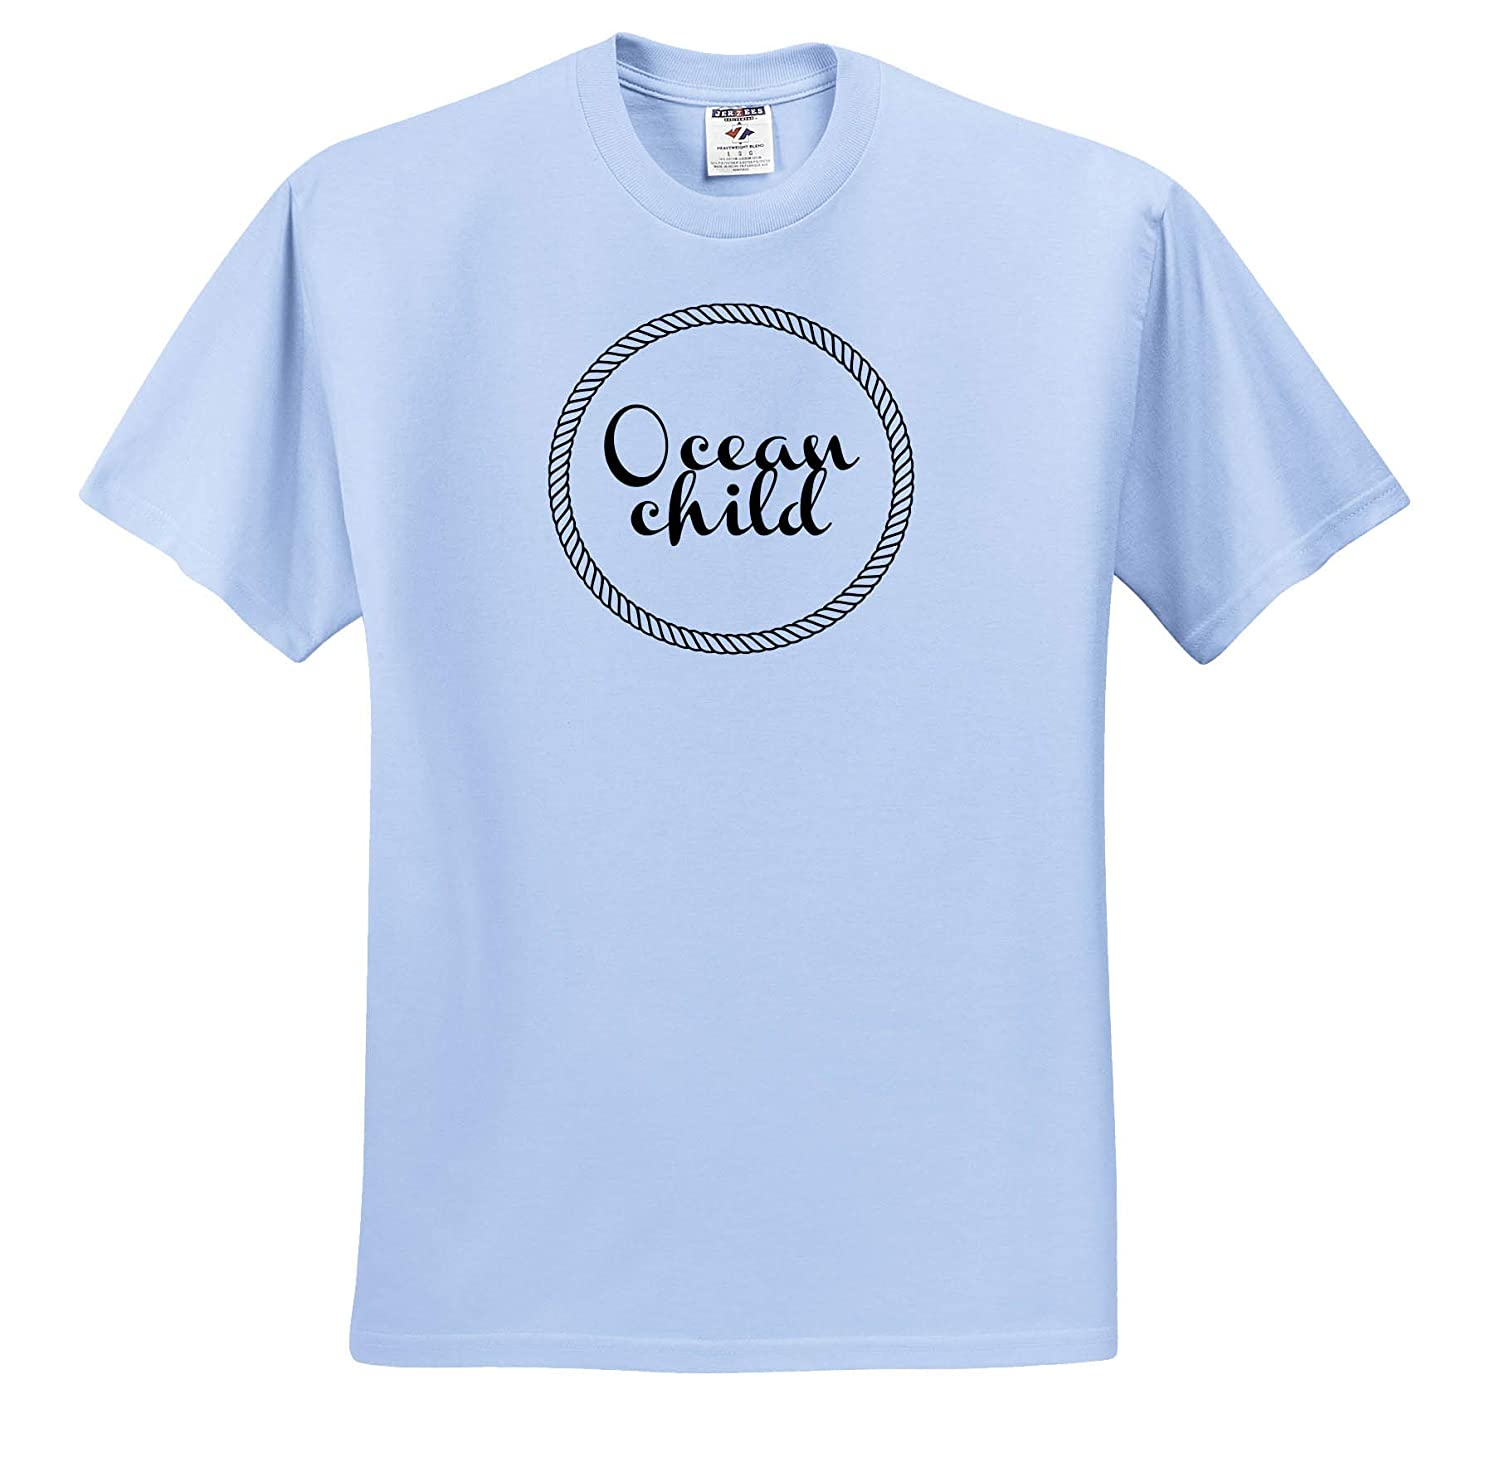 T-Shirts Image of Ocean Child Quote 3dRose Gabriella B Quote